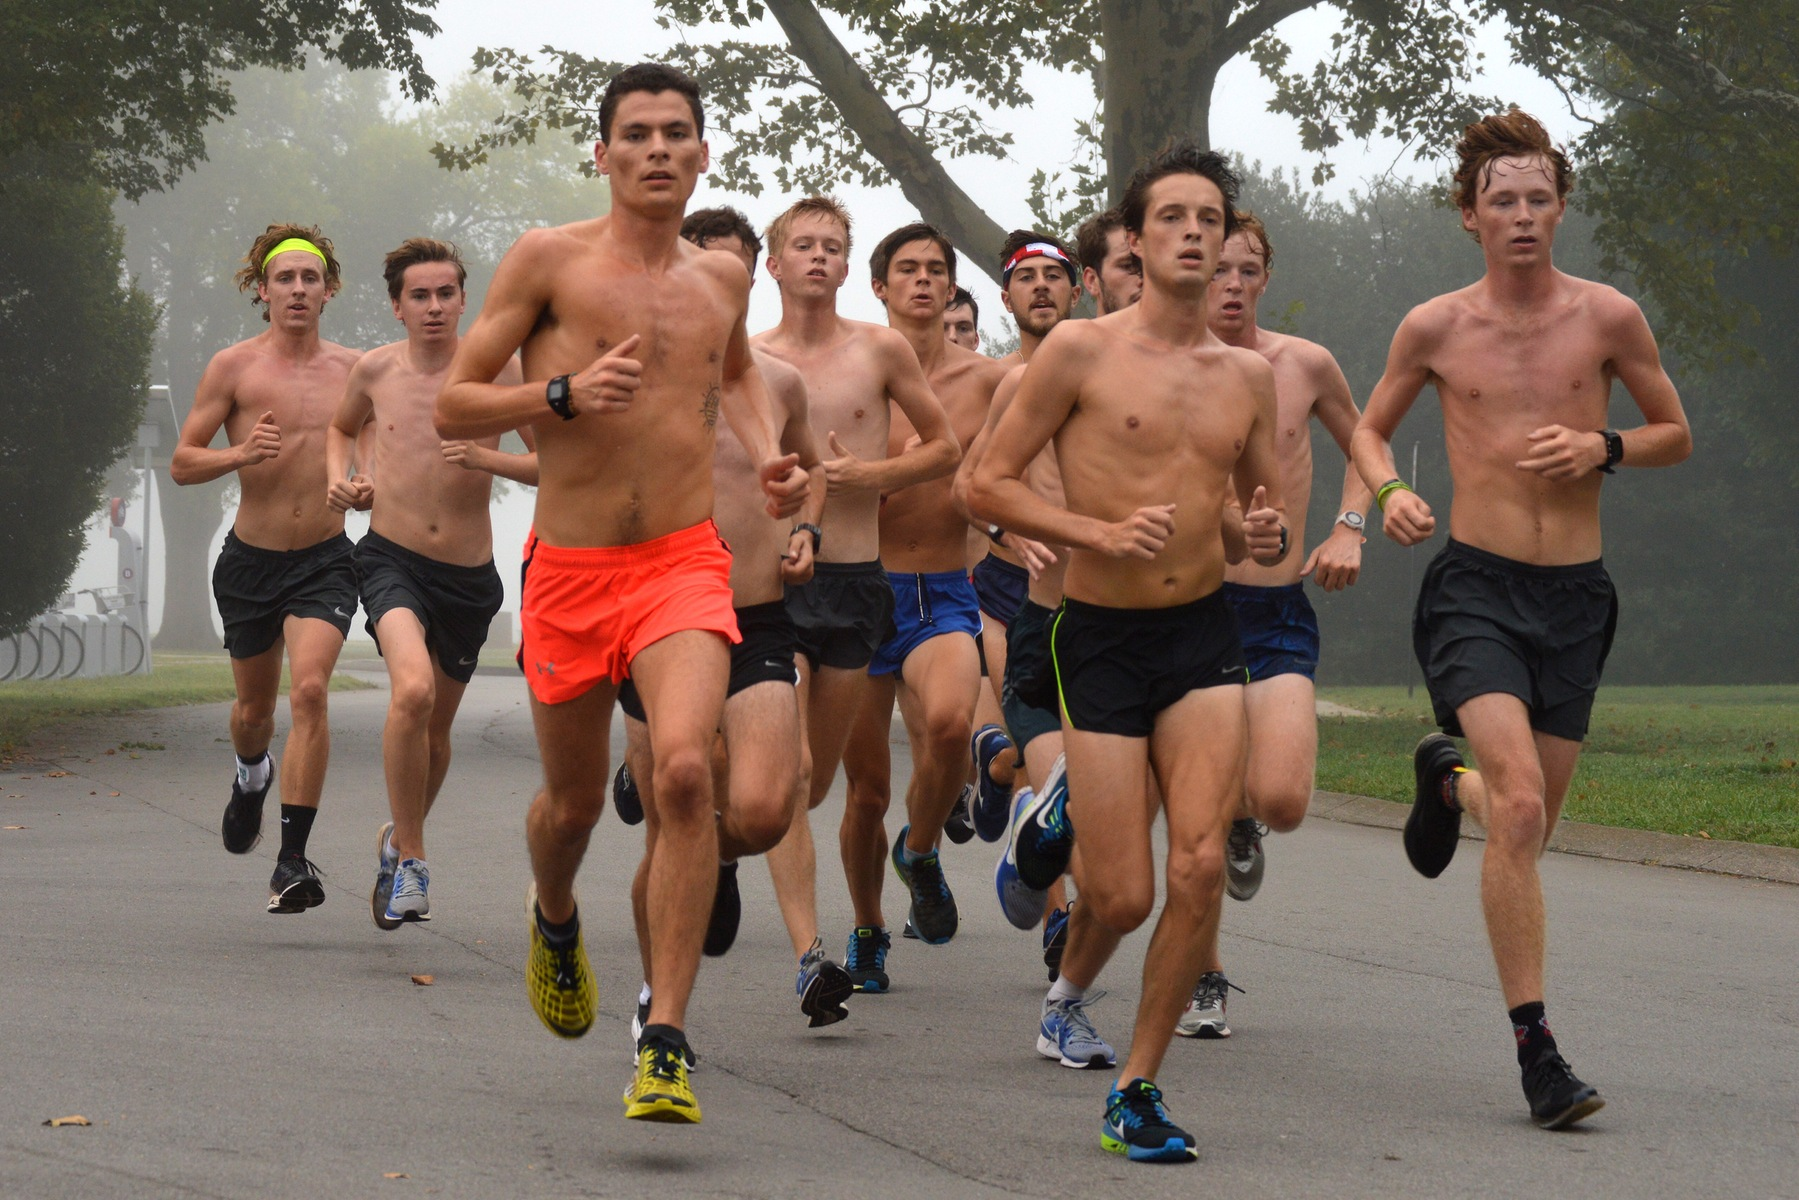 The Belmont men's cross country team runs through one of its final preseason training sessions at Centennial Park in August.